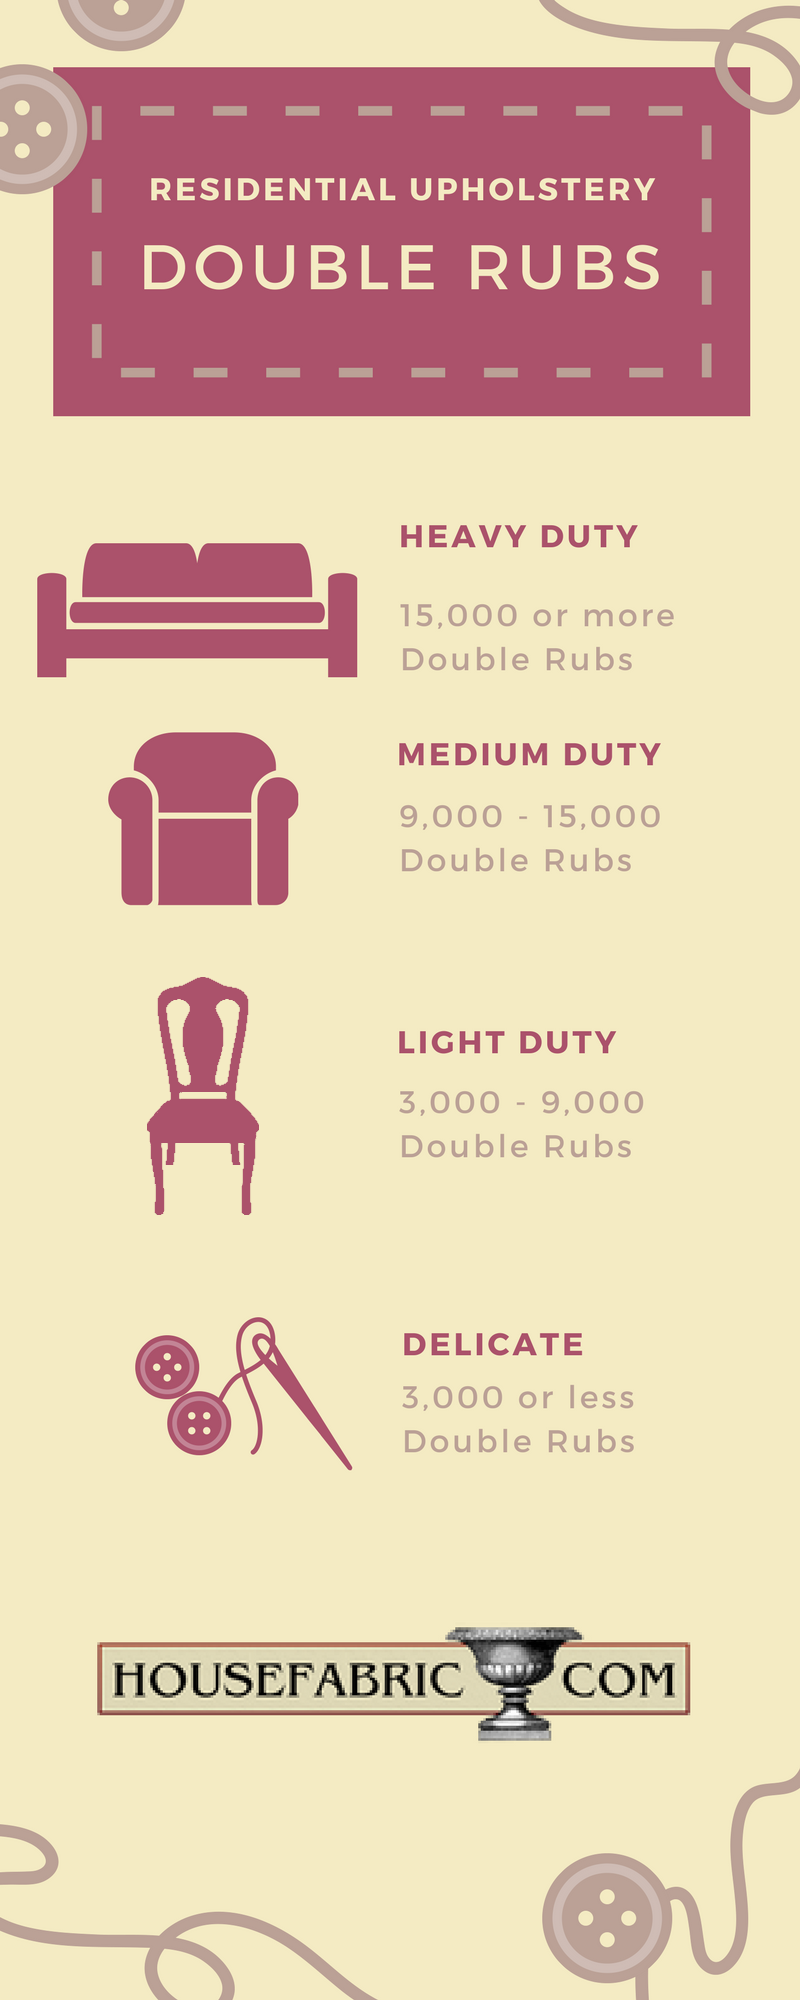 Recommended Double Rubs for Residential Upholstery